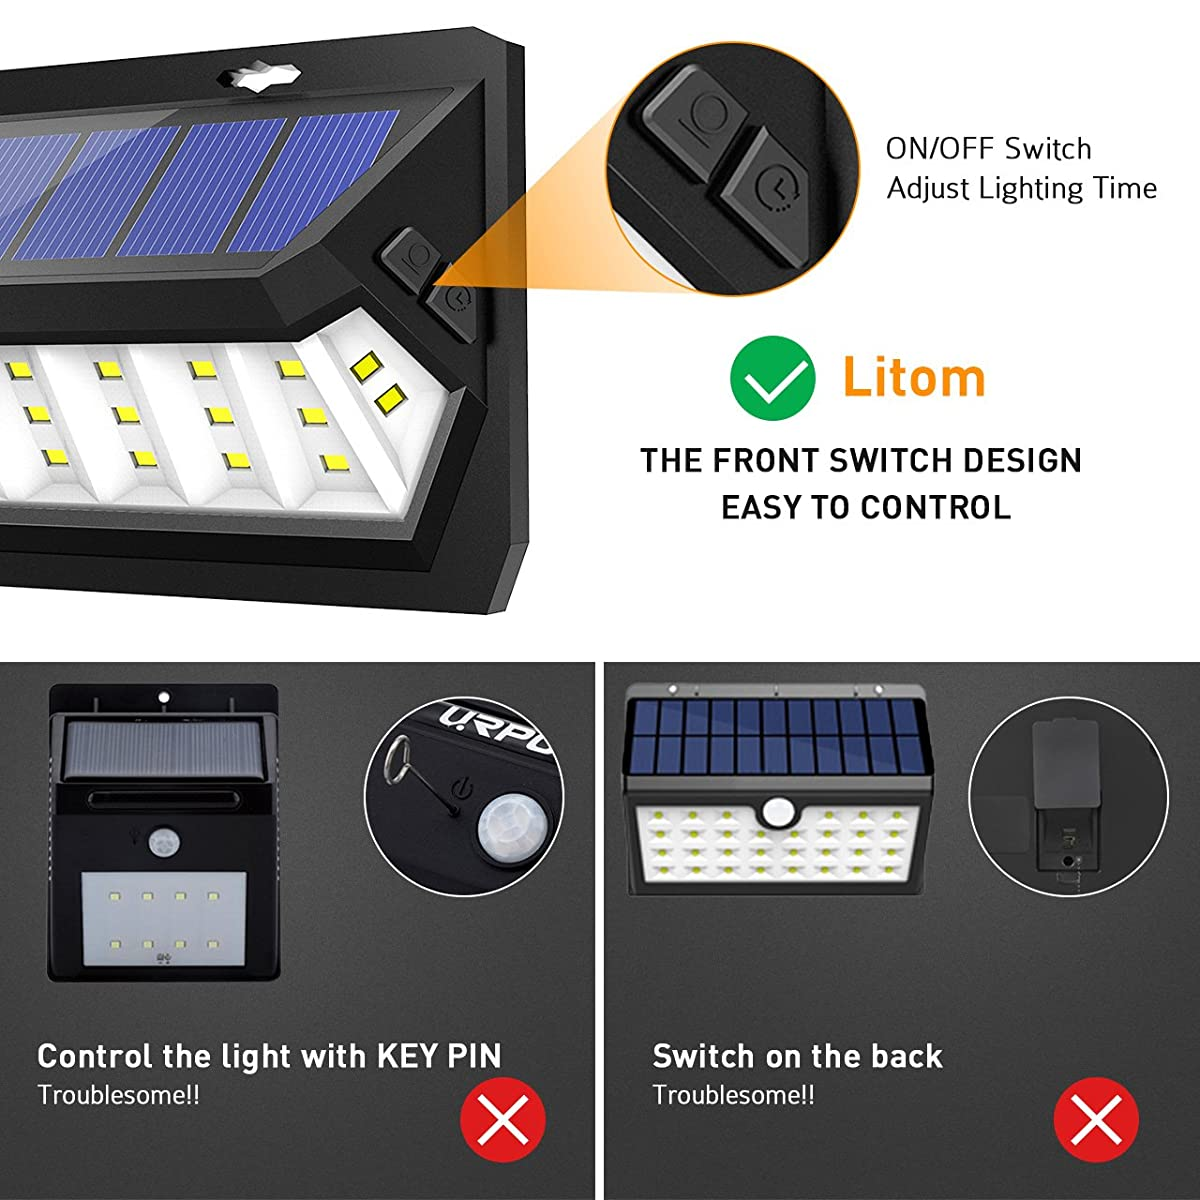 Litom Solar Lights Outdoor 30 LED, Adjustable Lighting Time Solar Motion Sensor Light with Wide Angle and Waterproof Design, Wireless Solar Lighting for Garden Yard Patio